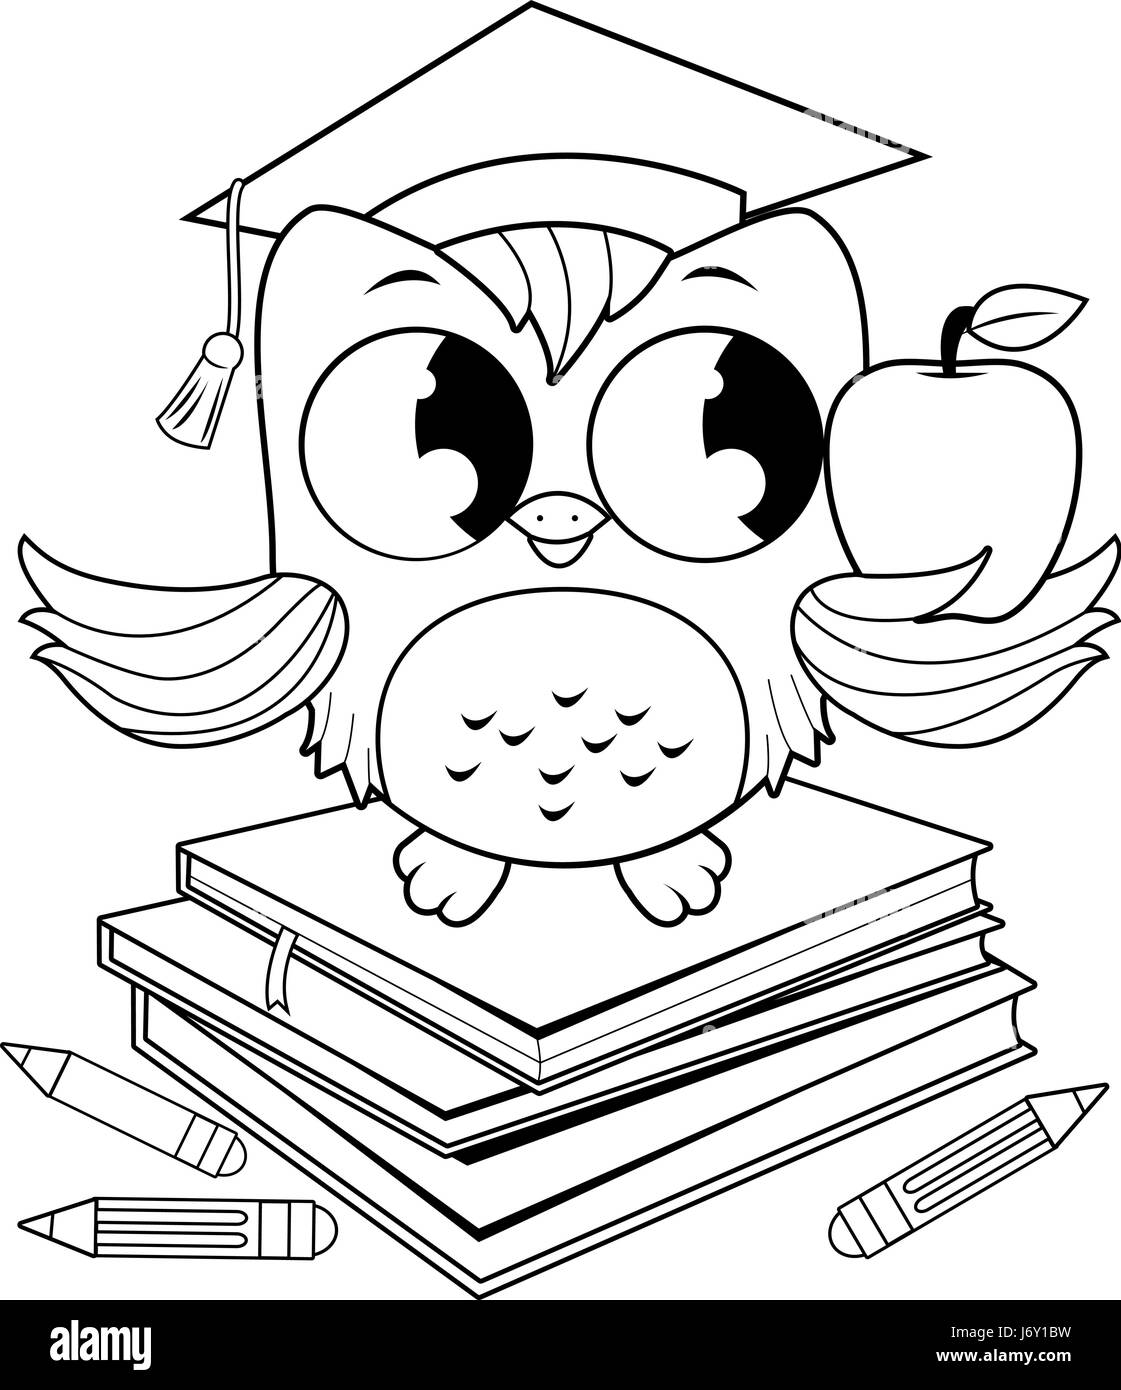 Black White Owl Line Drawing Stockfotos & Black White Owl Line ...